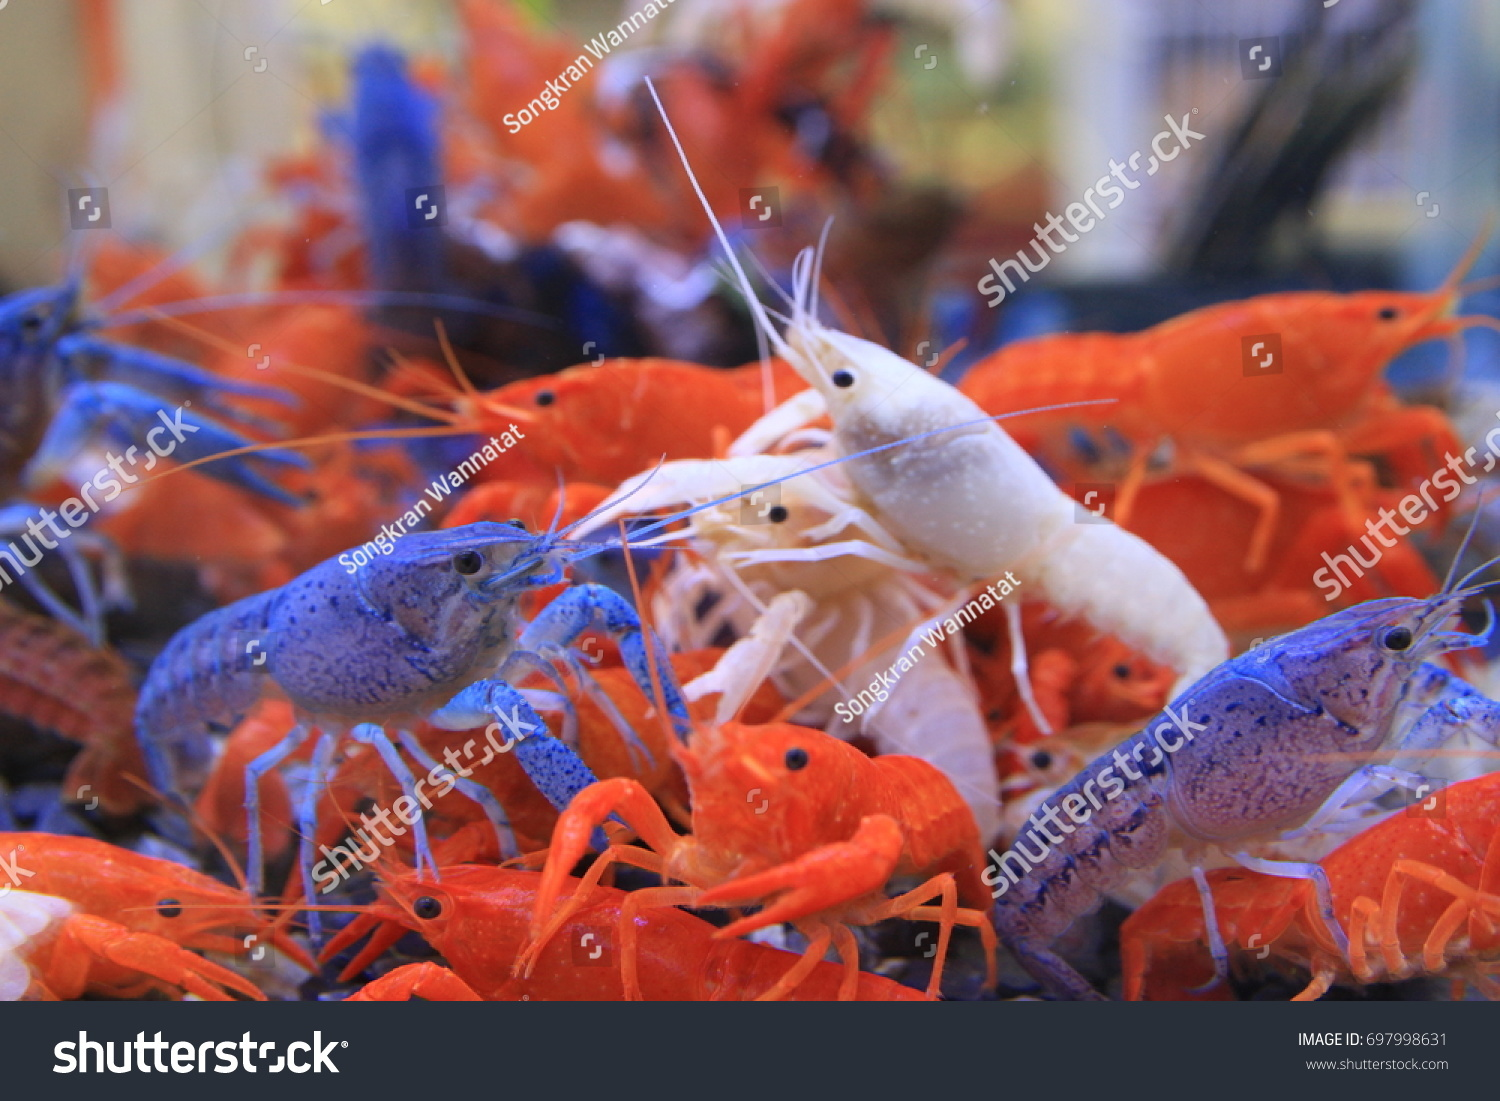 Simple Crayfish Slough Off Change Color Stock Photo (Royalty Free ...